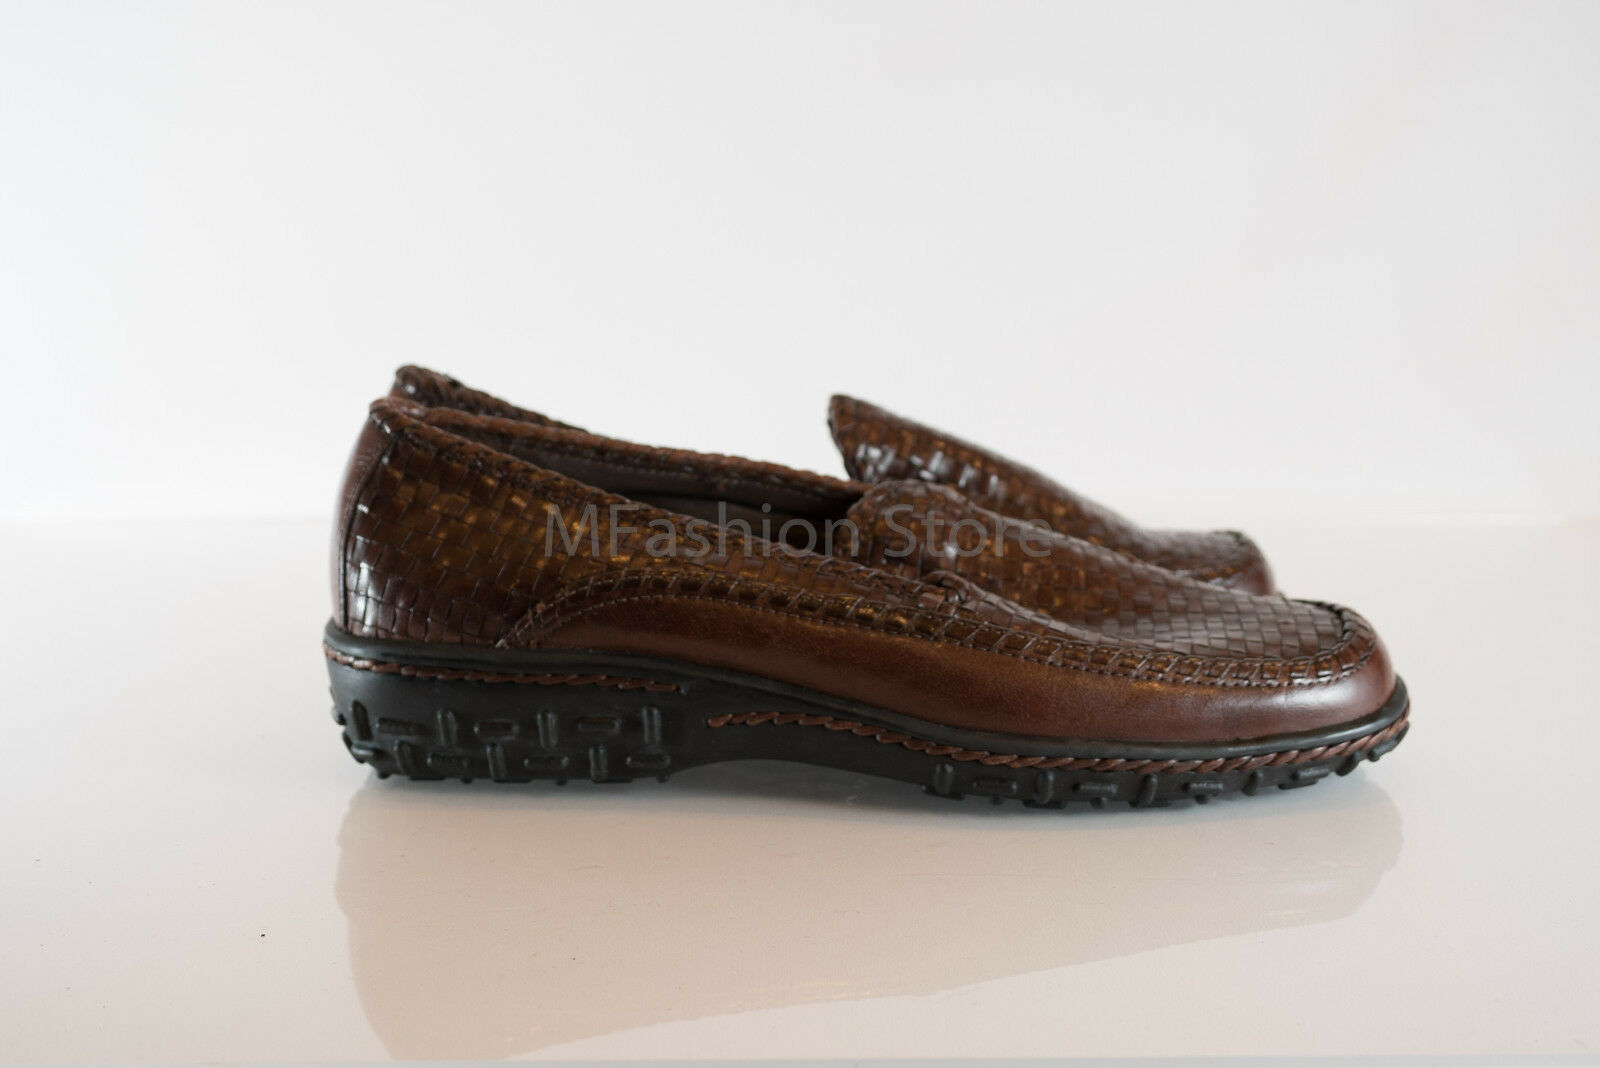 Cole Haan Haan Haan Brown Leather Slip On Moc Toe Loafer Casual Size US 6.5B New 53e25c